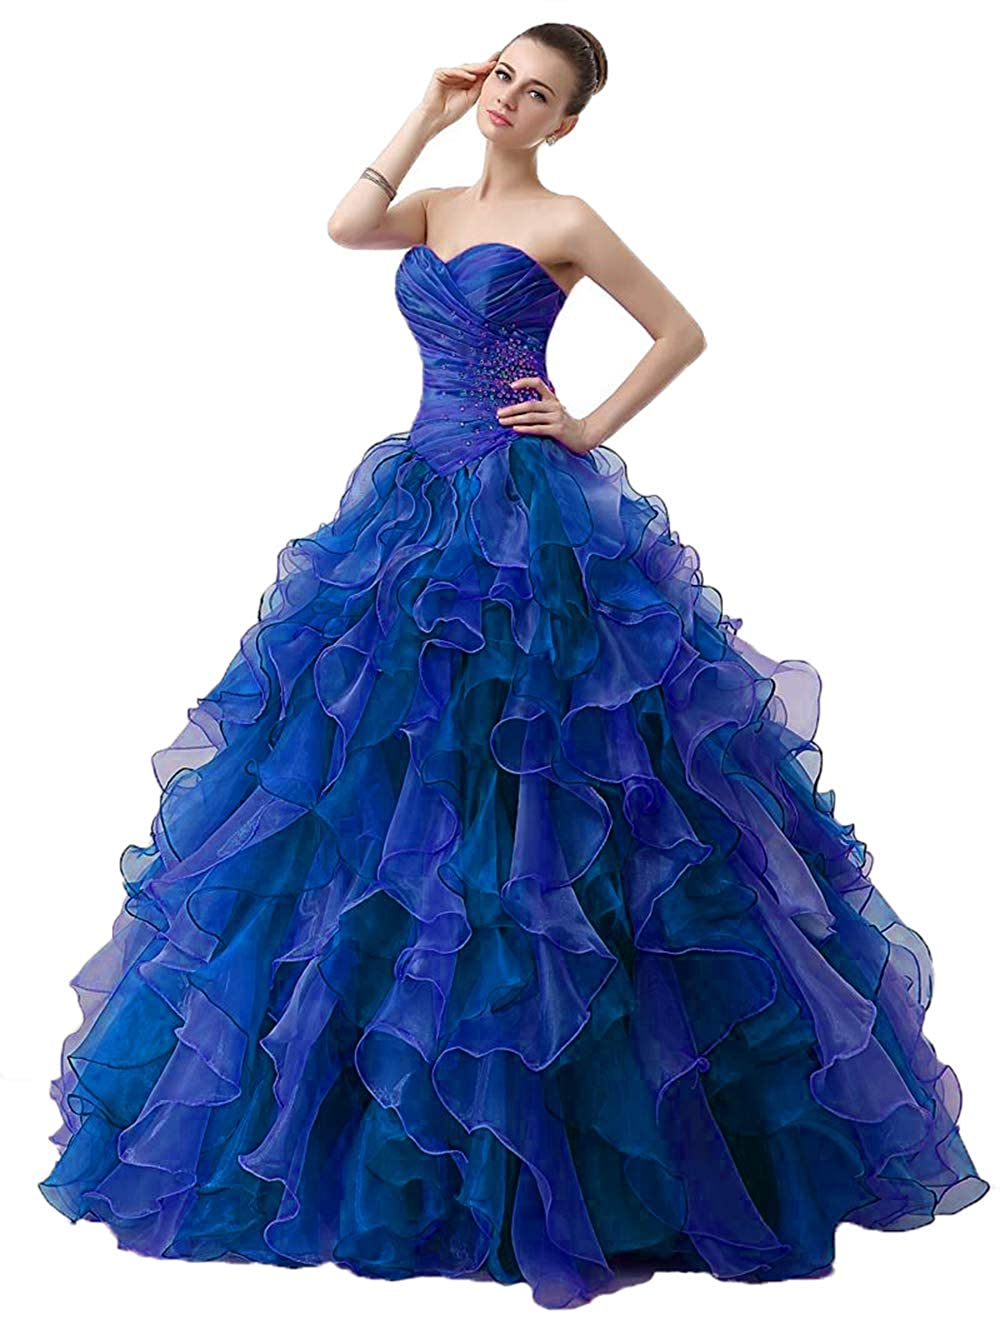 Royal bluee Wanshaqin Women's Mermaid Beaded Sweetheart Organza Ruffled Bridal Ball Gown Wedding Dress Quinceanera Dresses